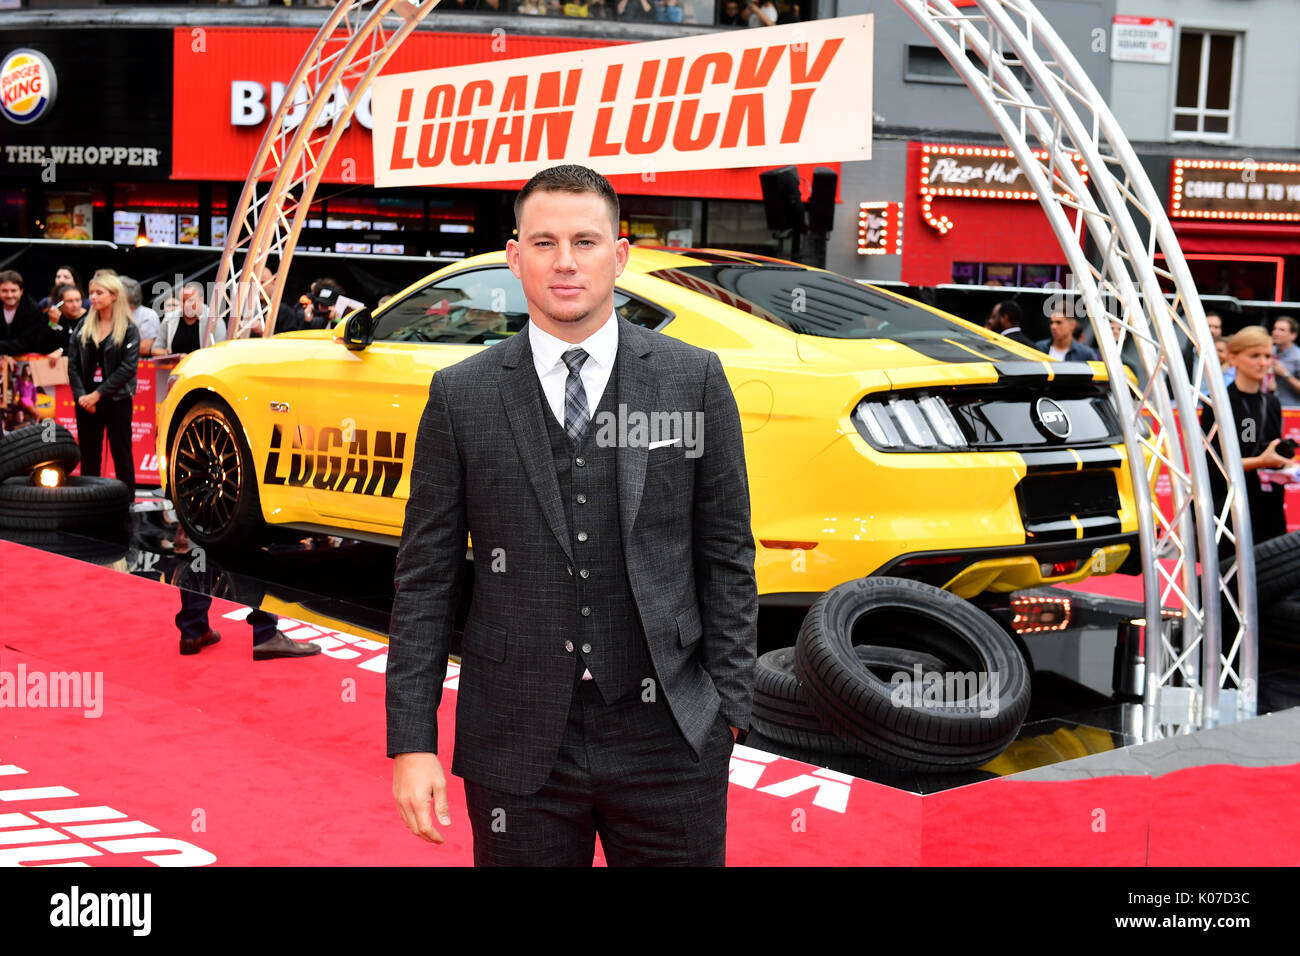 Channing Tatum attending the Logan Lucky UK Premiere held at Vue West End in Leicester Square, London. - Stock Image